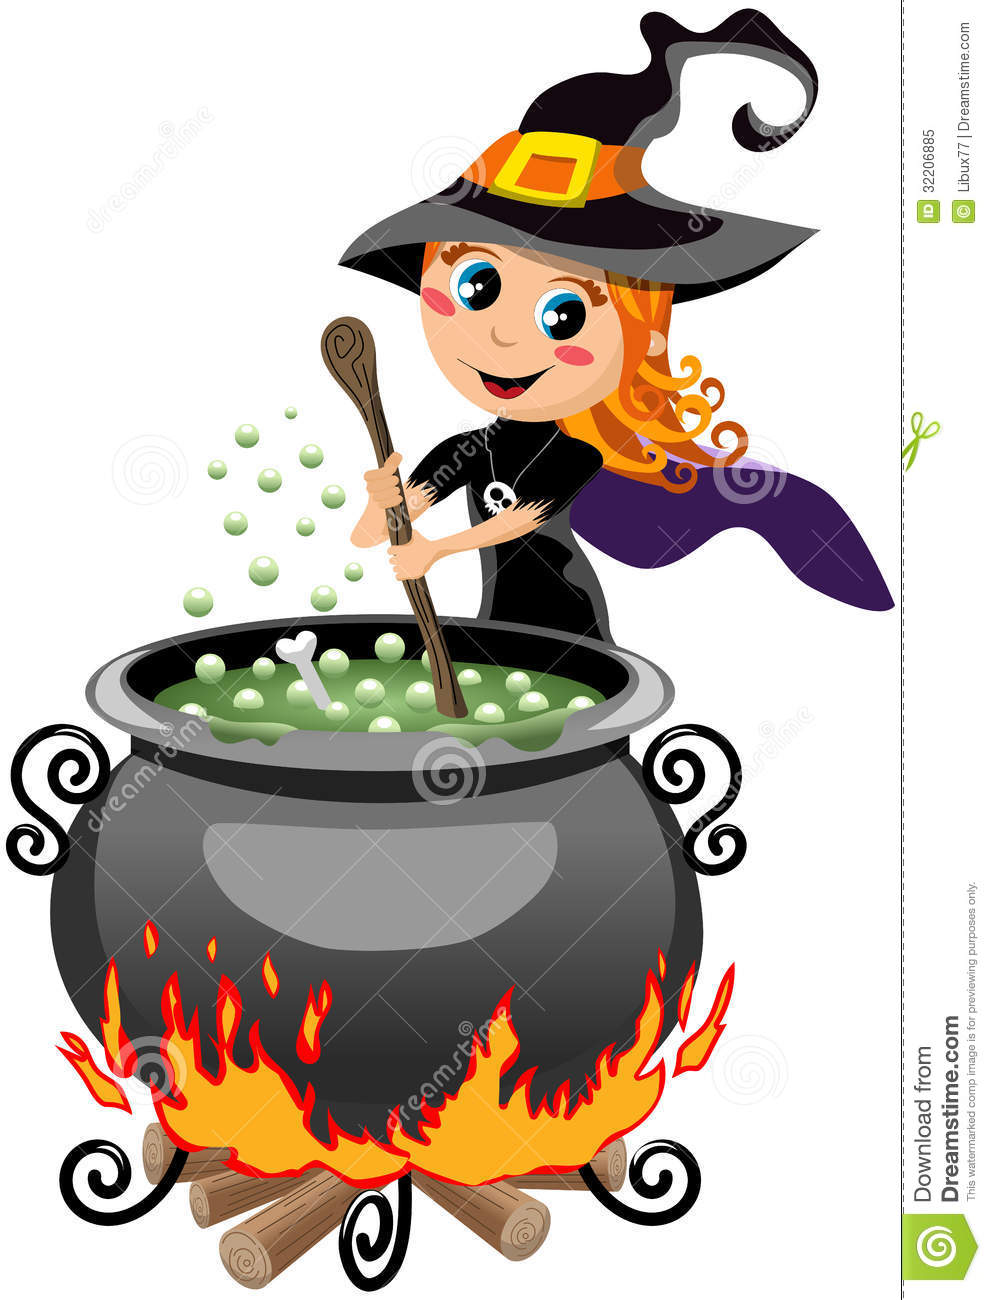 aujourd'hui est un jour spécial  Brew-clipart-little-cute-halloween-witch-preparing-potion-illustration-featuring-smiling-calderon-isolated-white-background-eps-32206885